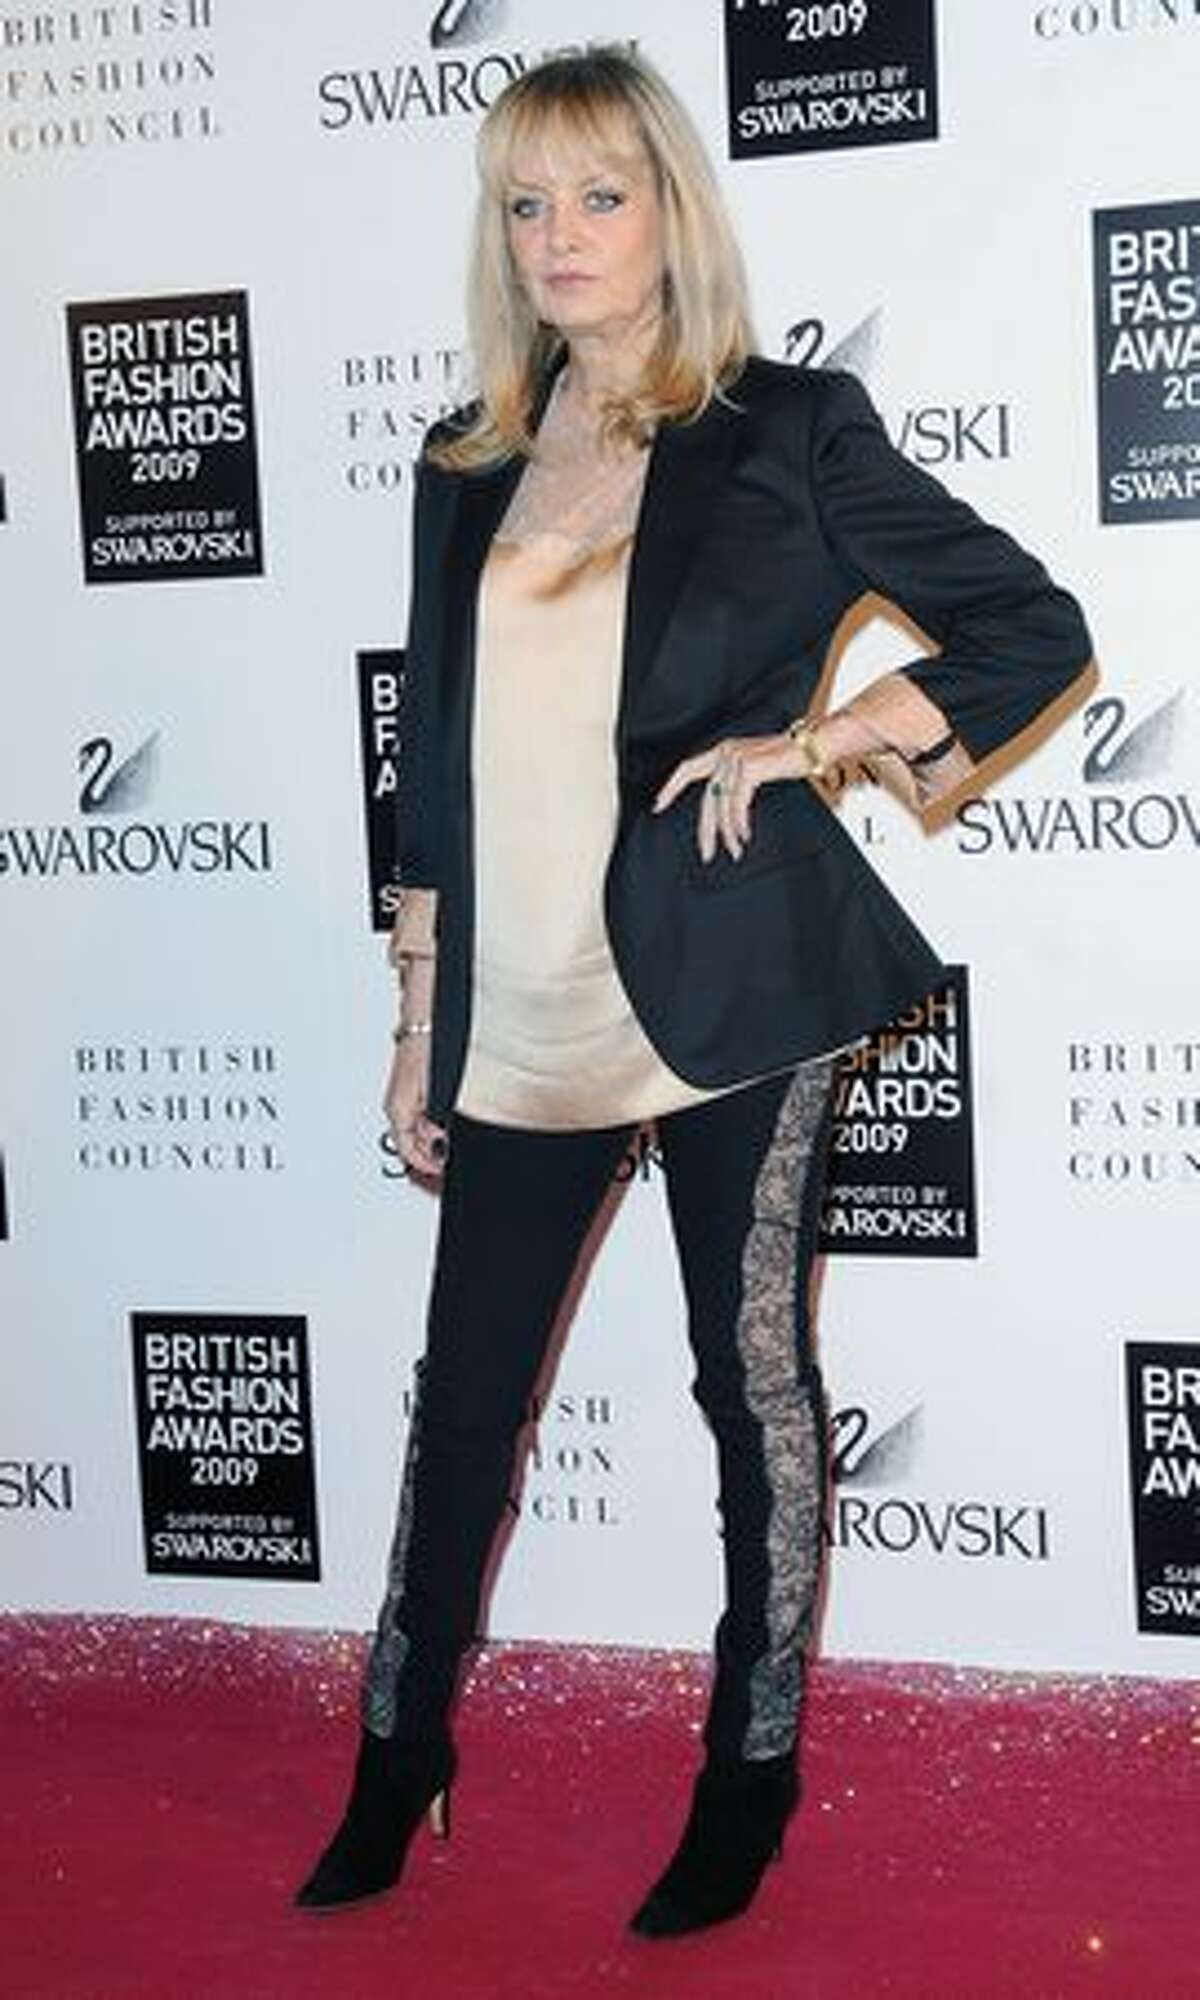 Twiggy attends the British Fashion Awards in London, England.